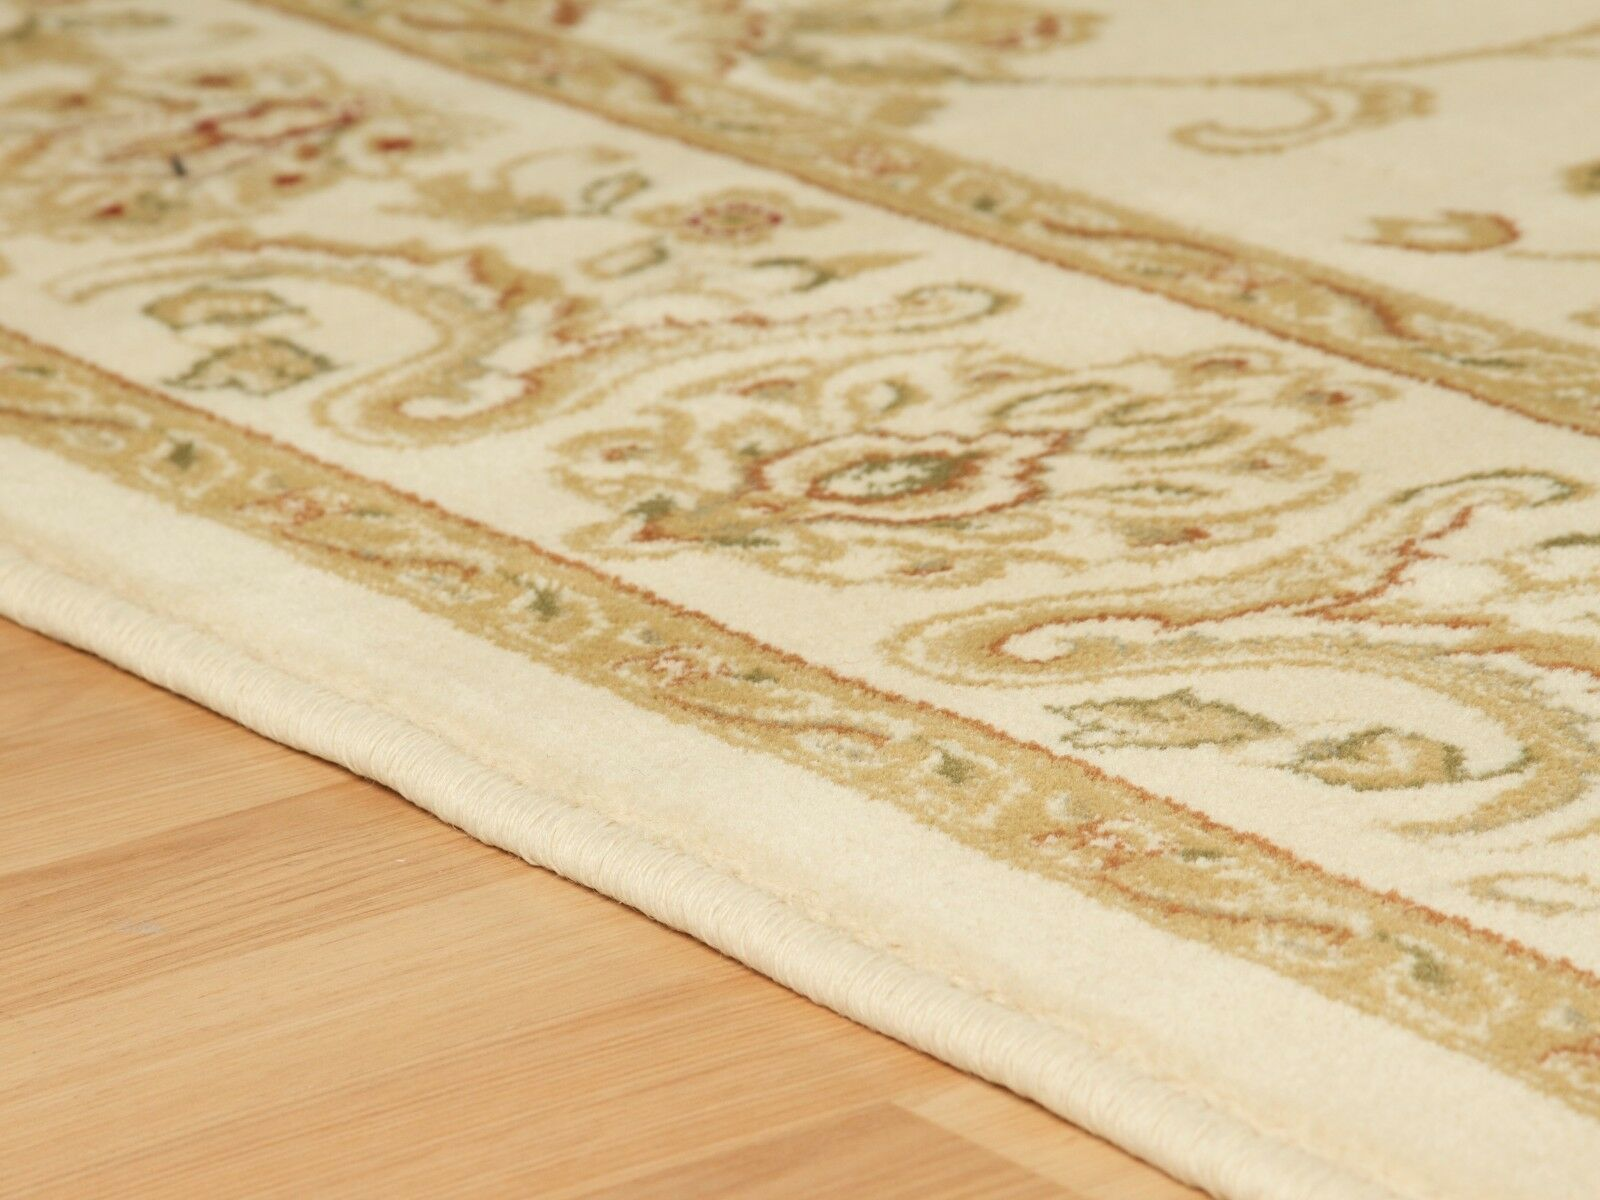 NEW LARGE - EXTRA EXTRA EXTRA XL LARGE BEIGE CREAM SOFT CLASSIC TRADITIONAL AREA RUG 23b5e7